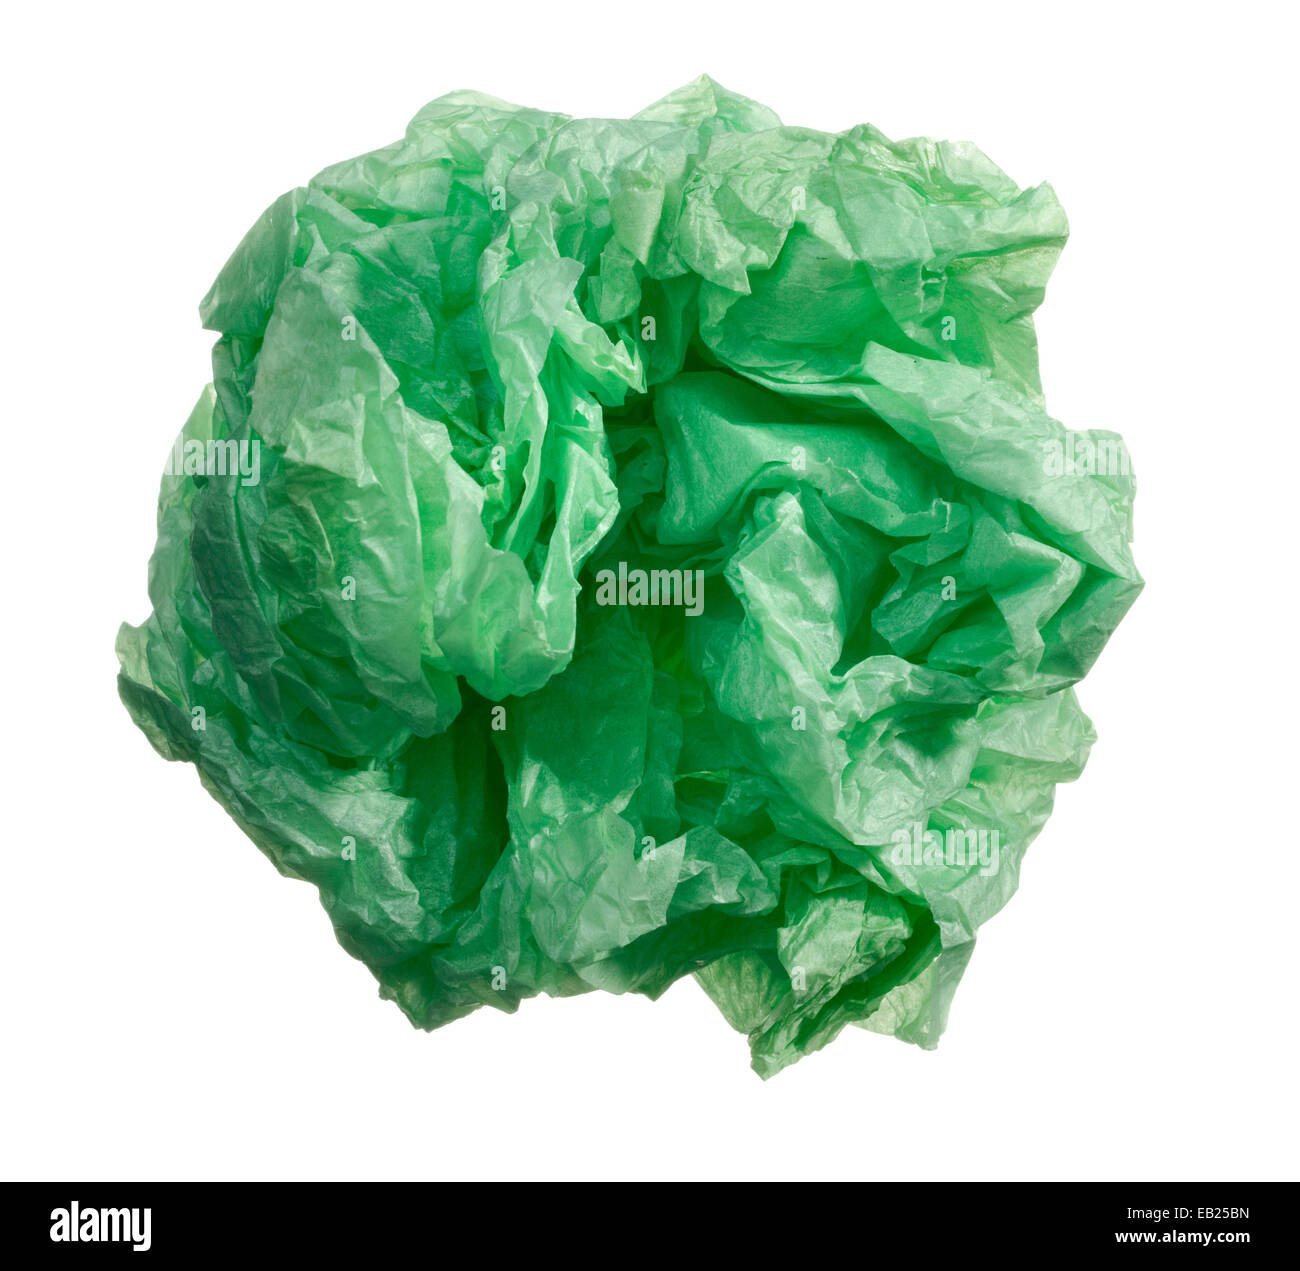 green paper wad - Stock Image